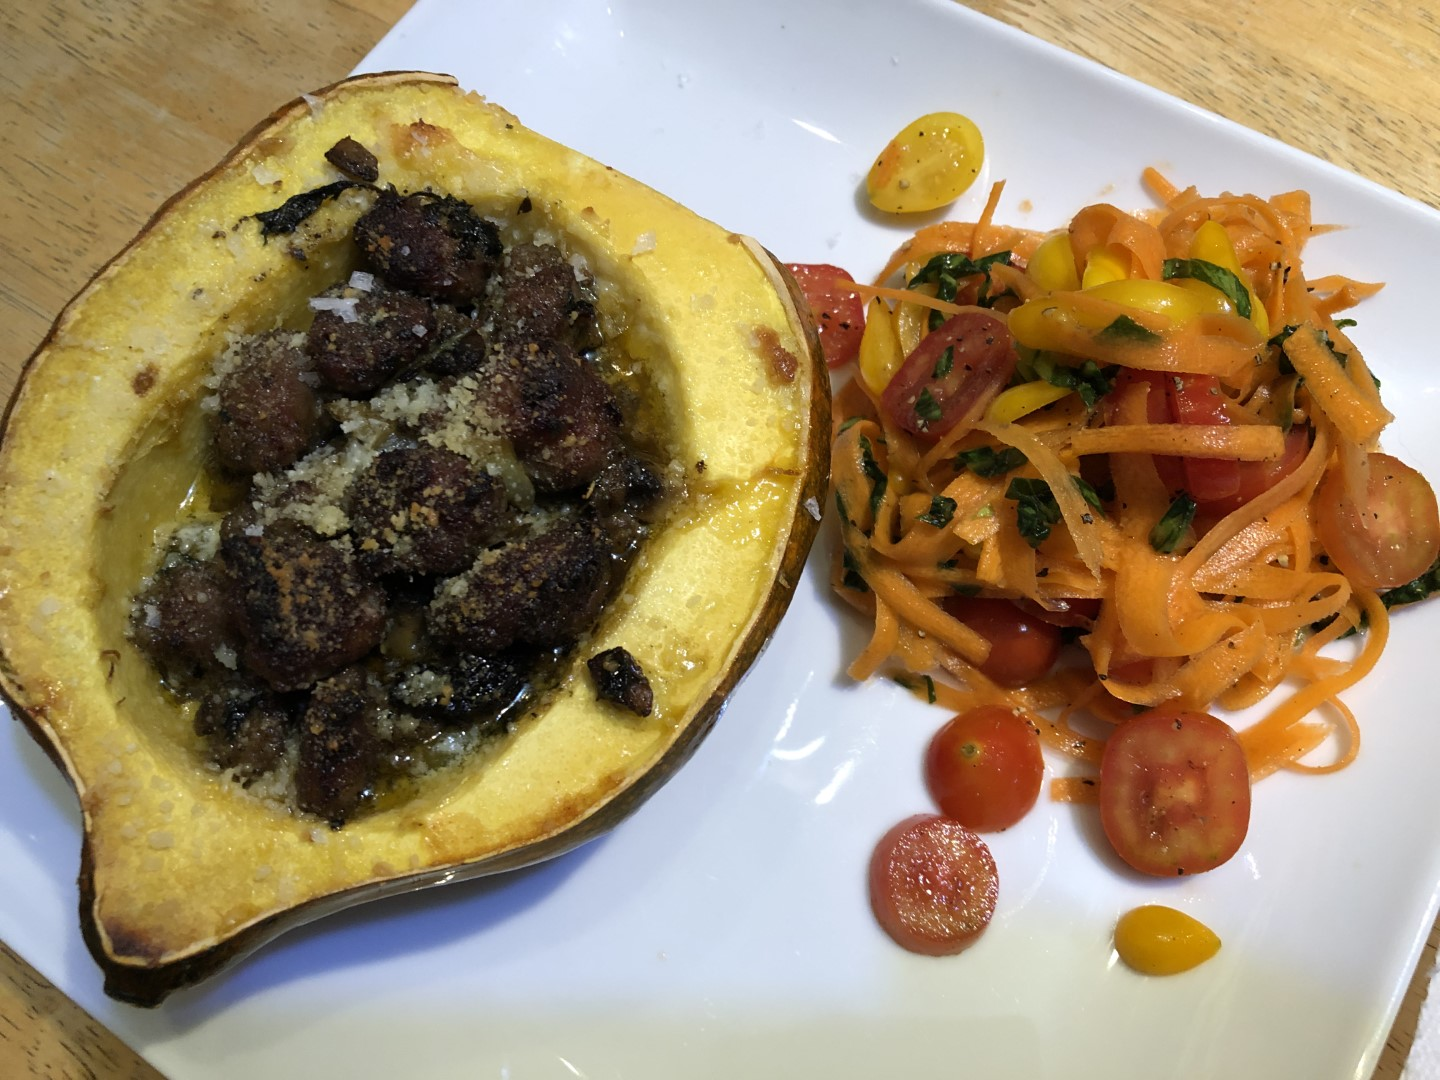 Acorn Squash with Carrot Salad